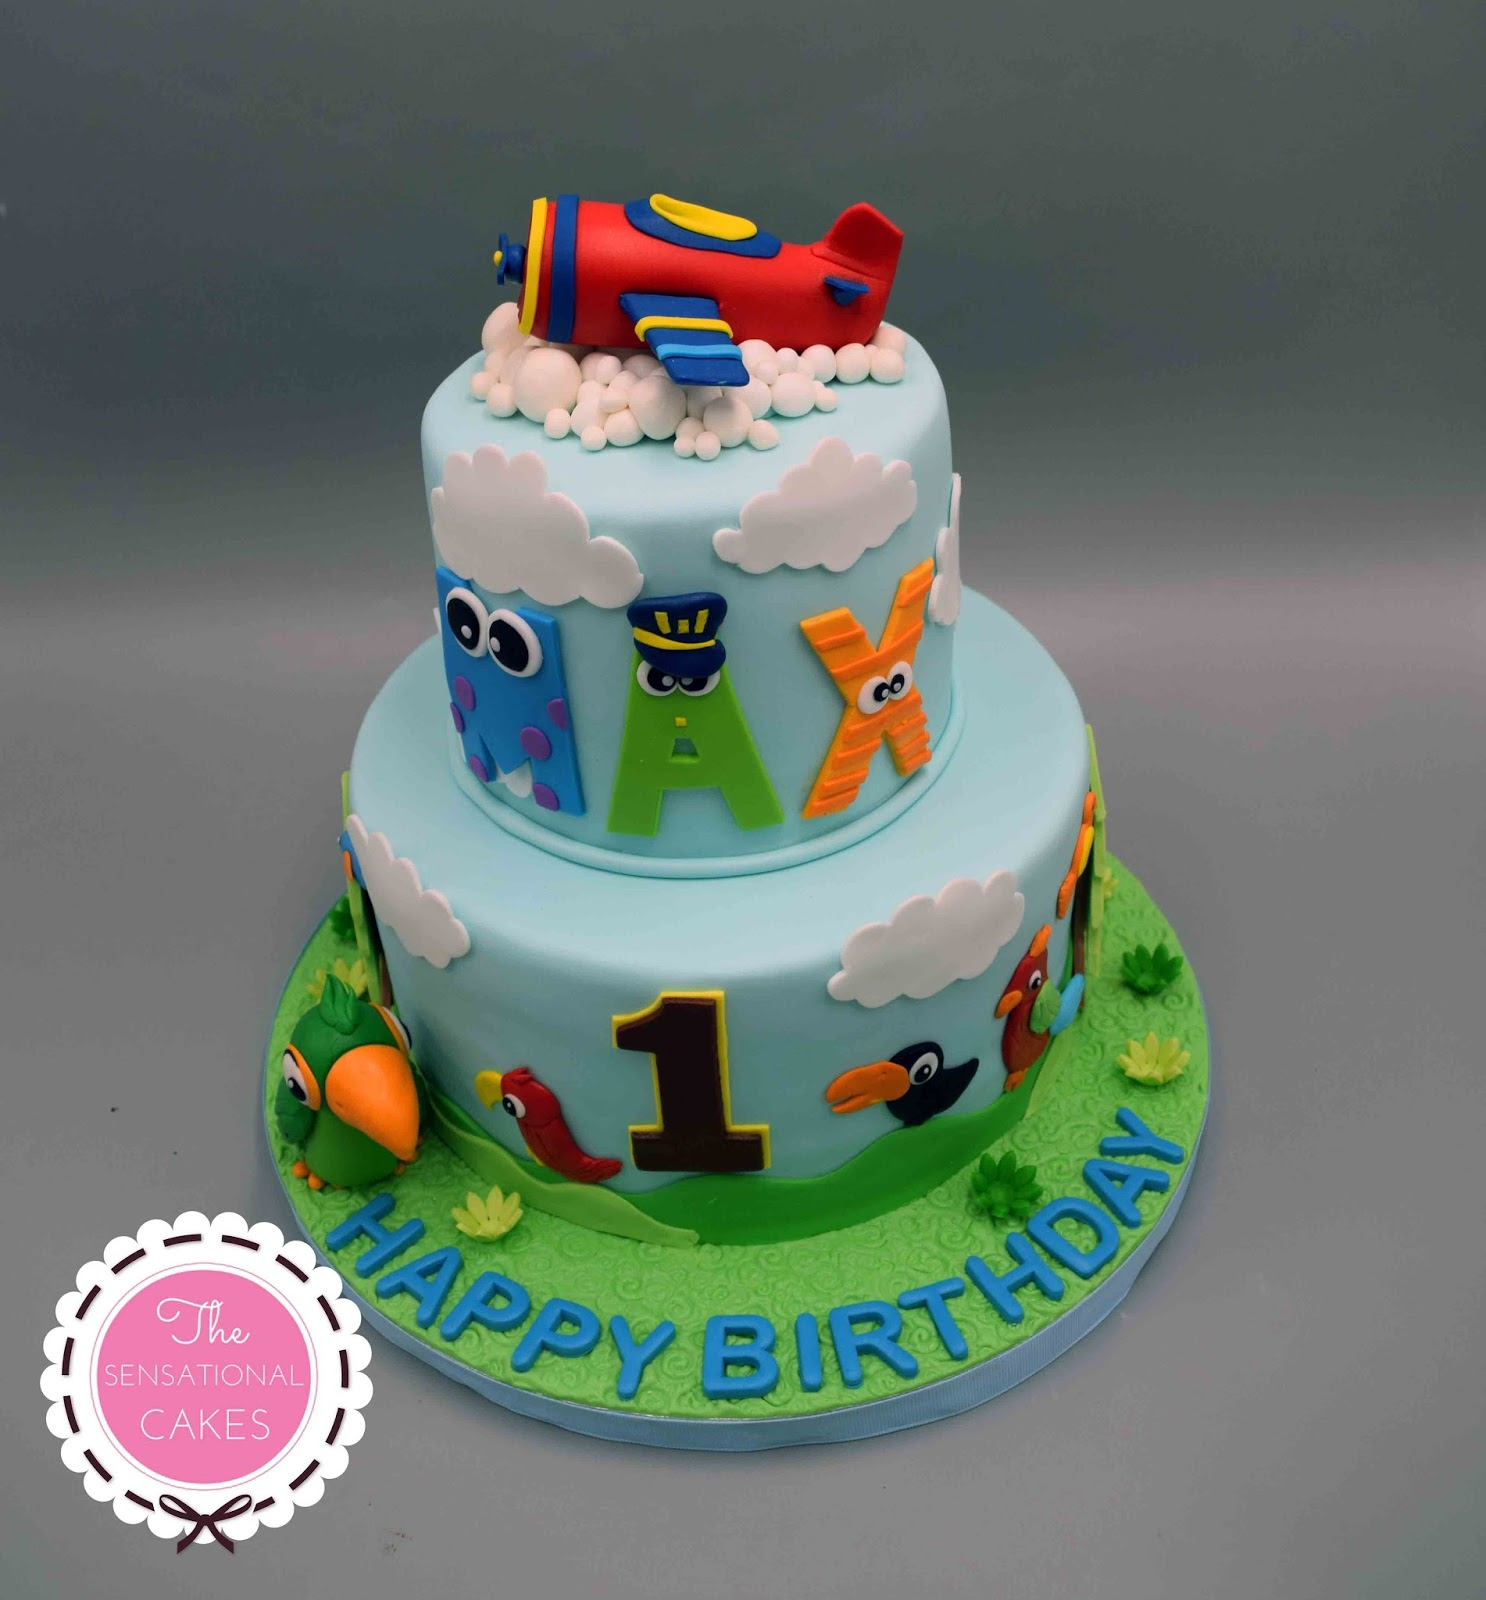 The Sensational Cakes Airplane Theme Baby 1st Birthday 3D Cake